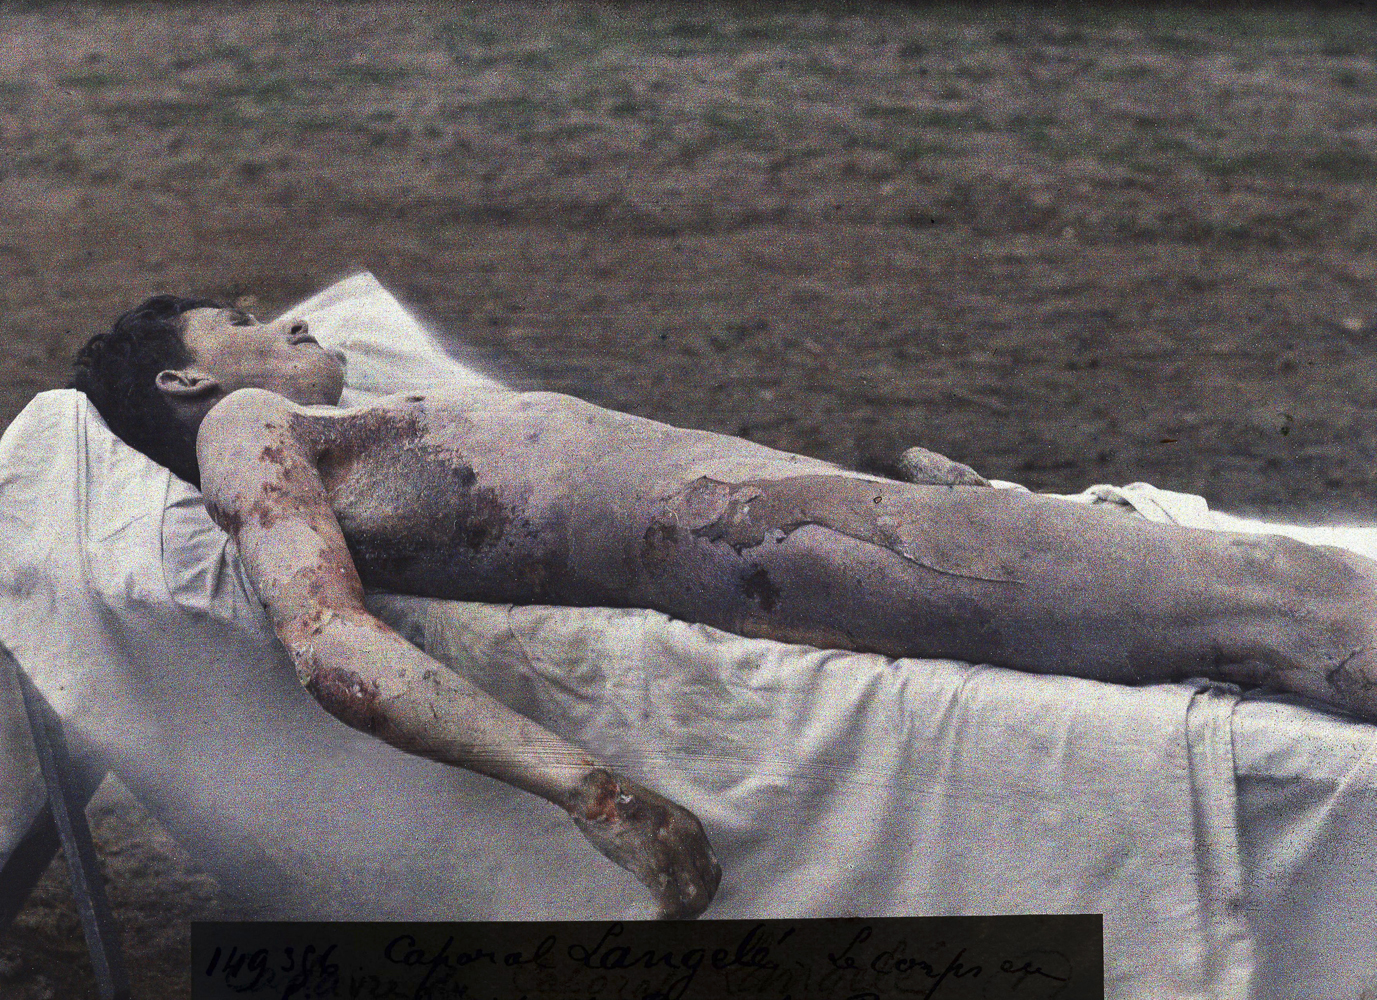 The corpse of a French soldier of the 99th infantry regiment, who was poisoned during a German gas attack on March 23, 1918 and died eight days later of pneumonia.